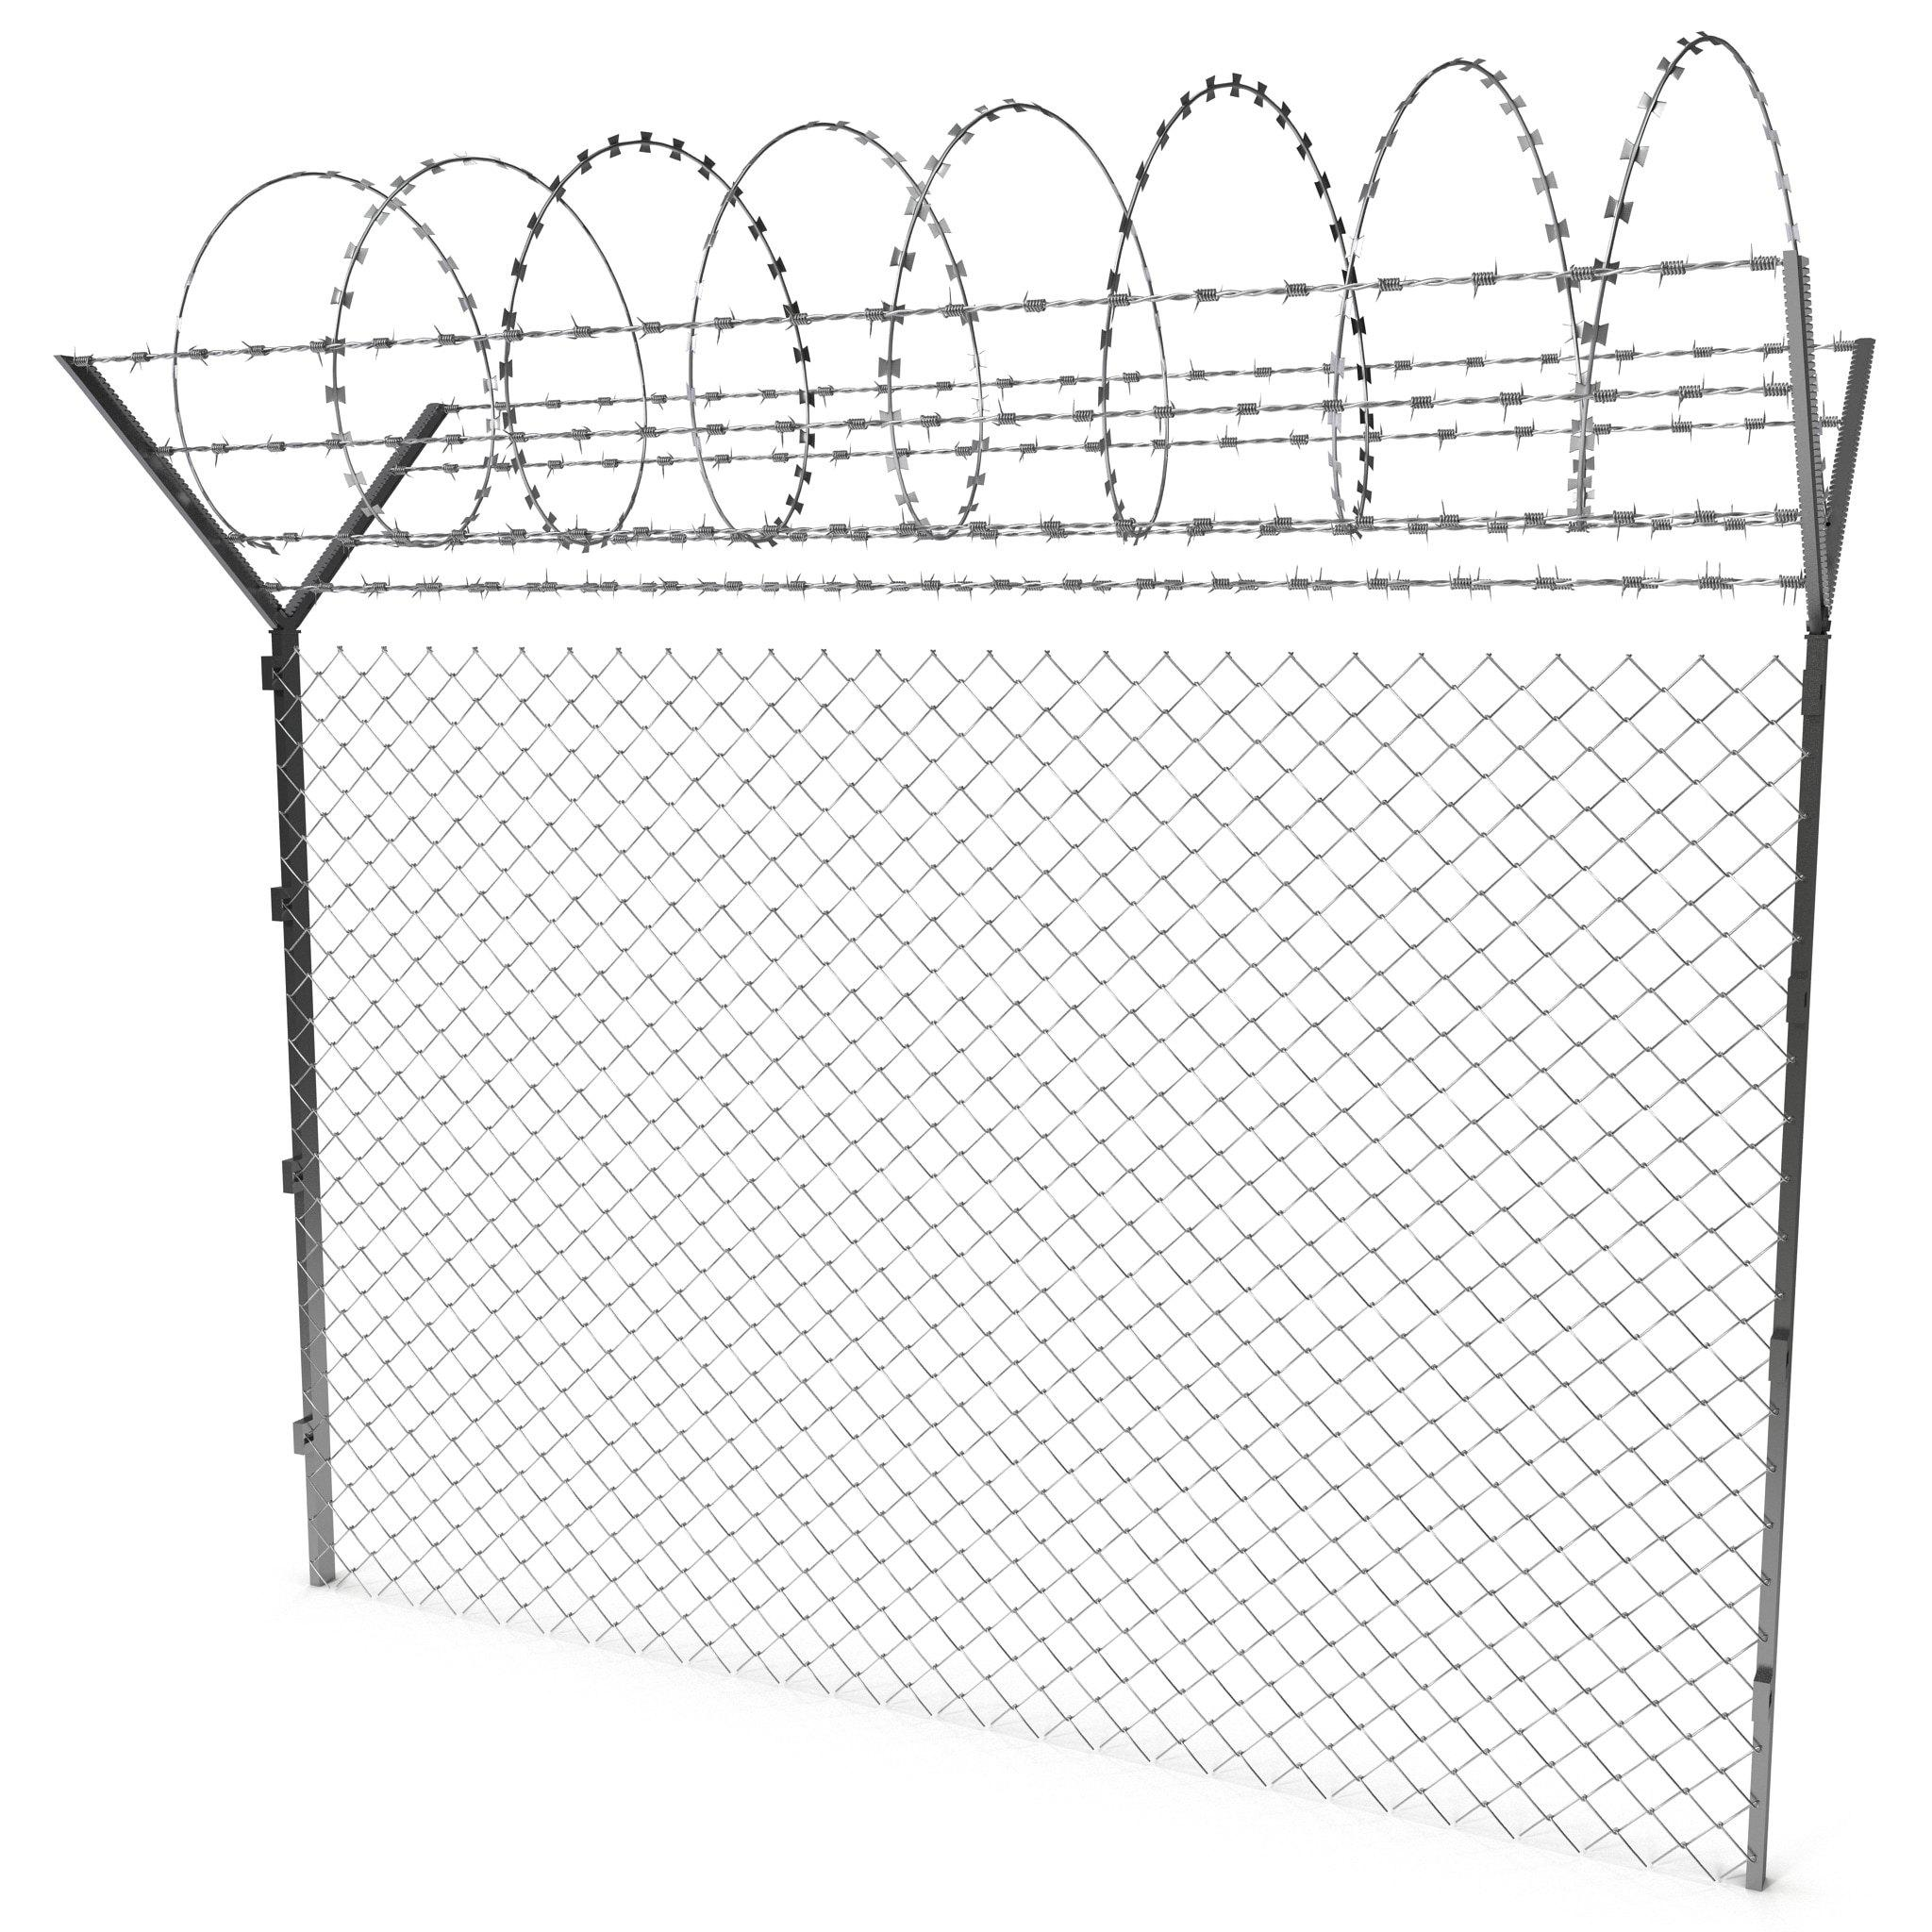 2048x2048 Barbed Wire Fence Decor References